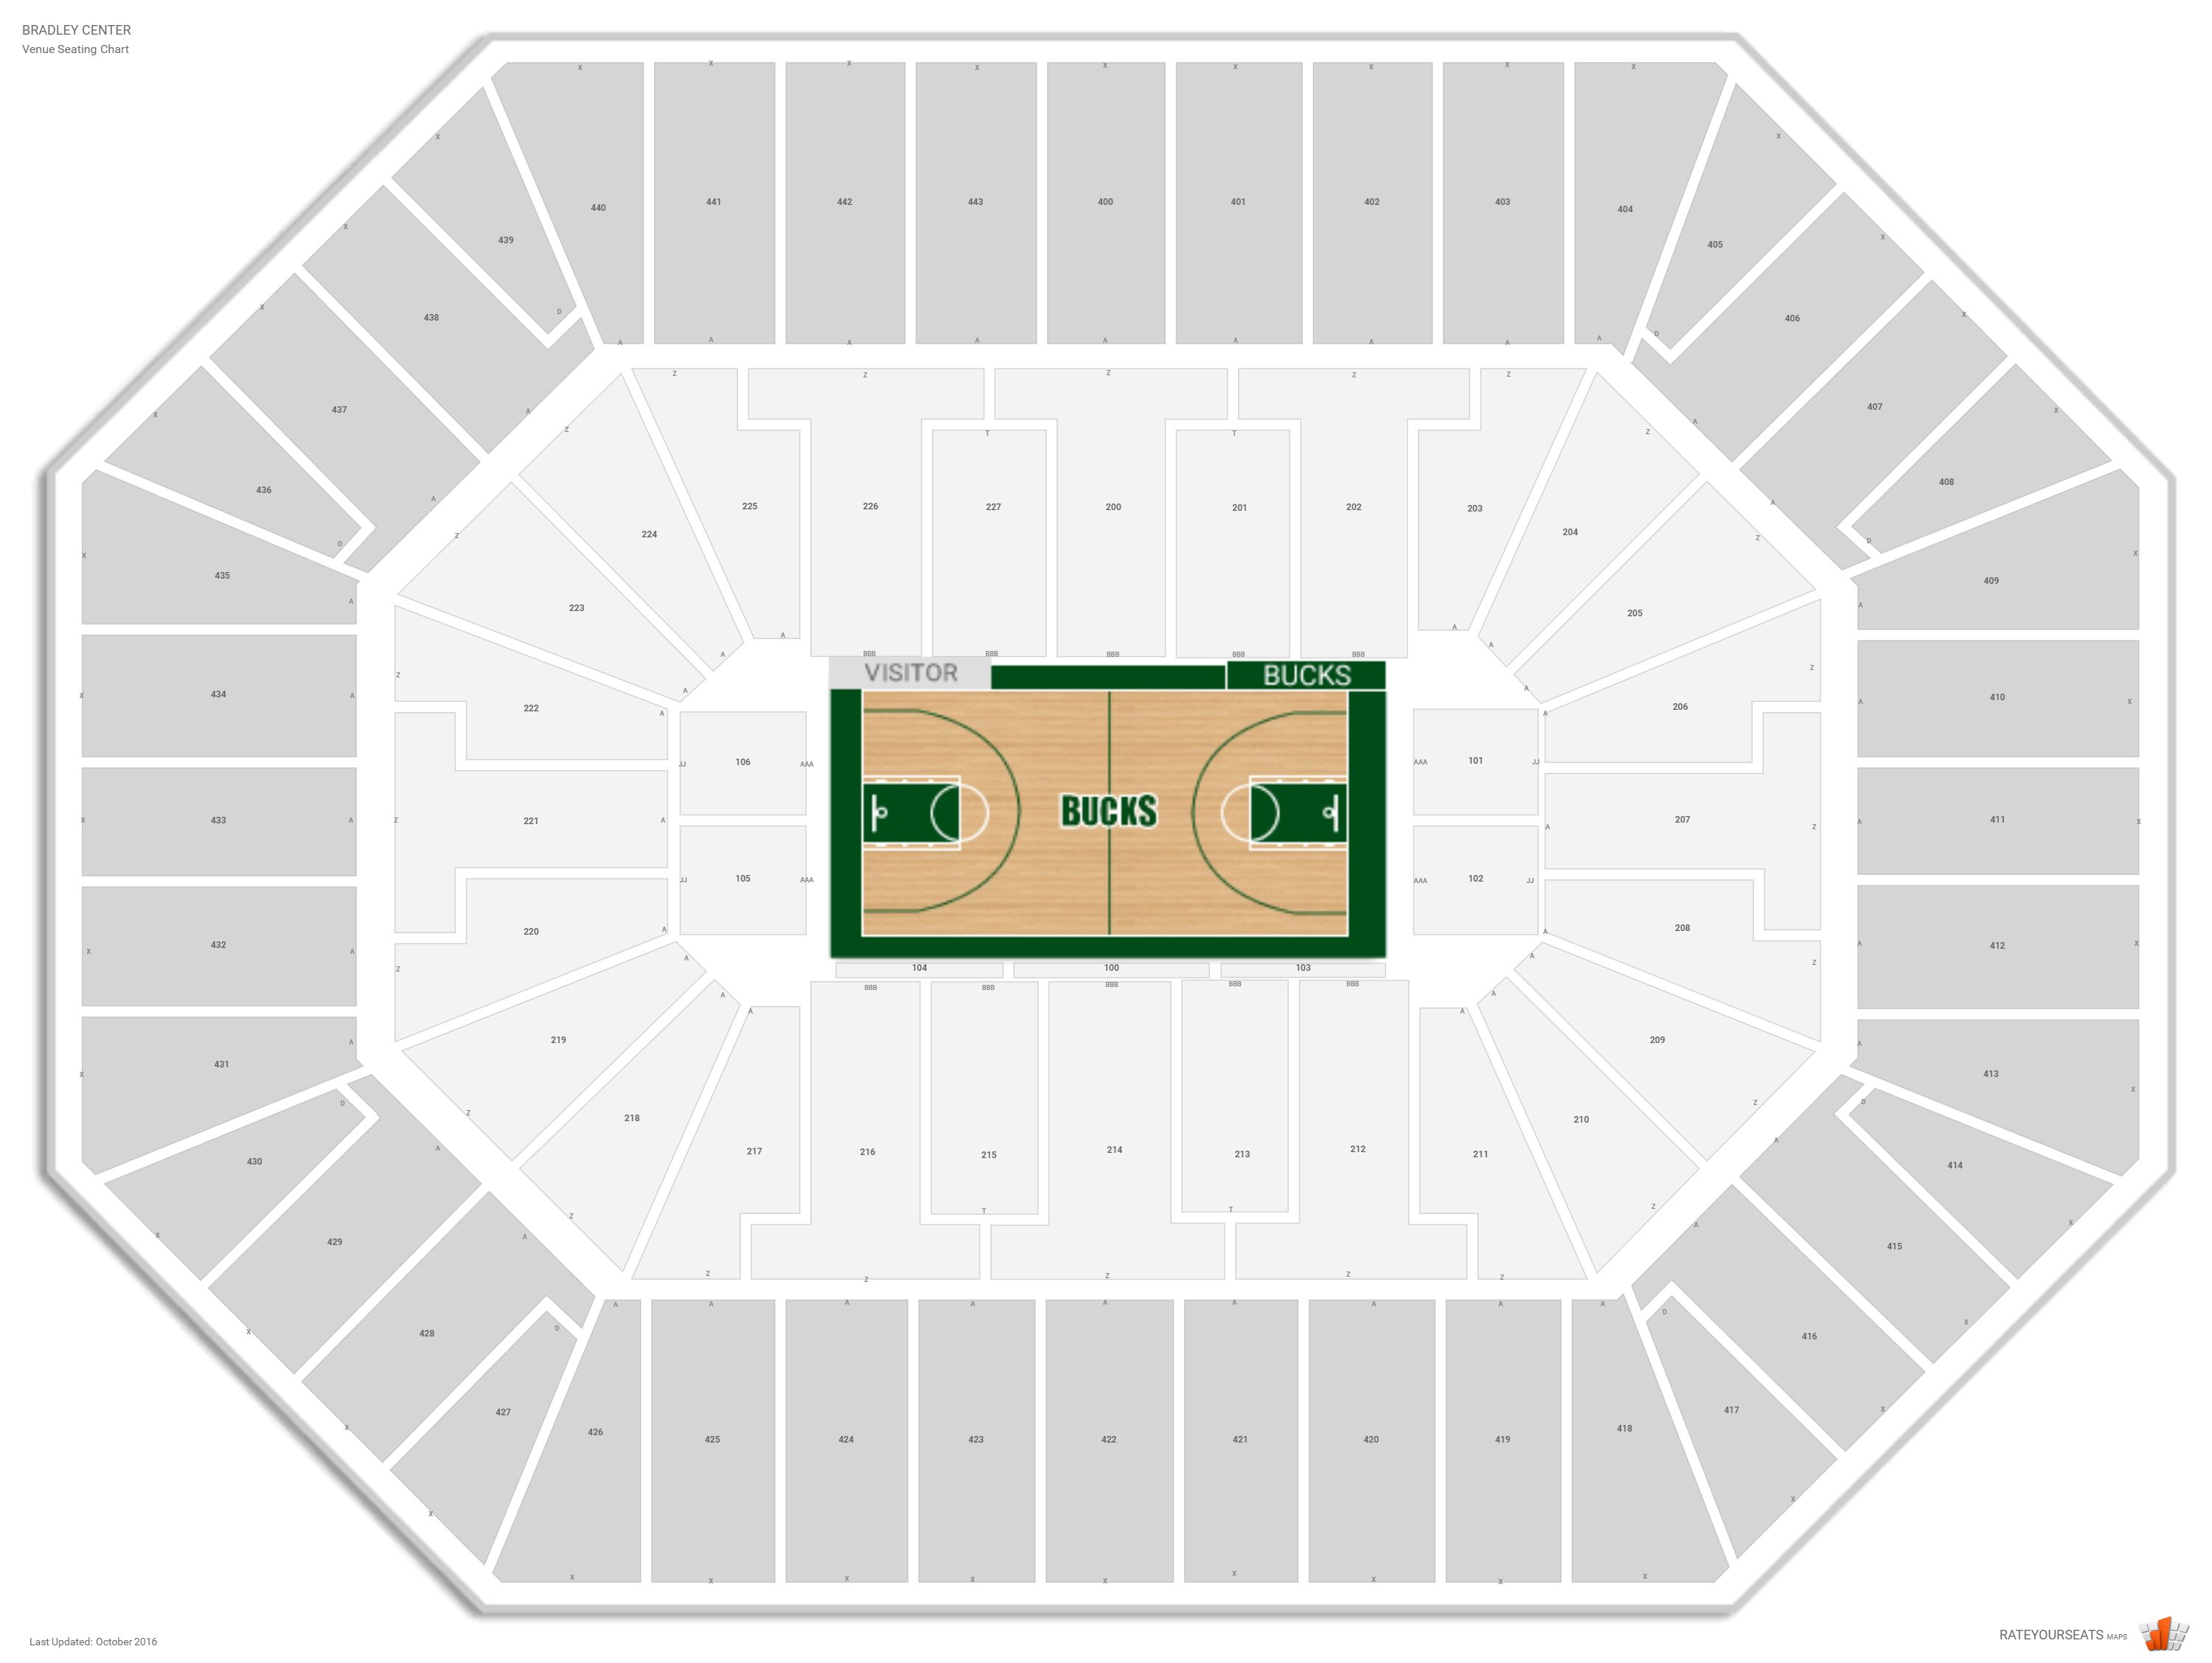 Bradley Center Seating Chart With Row Numbers